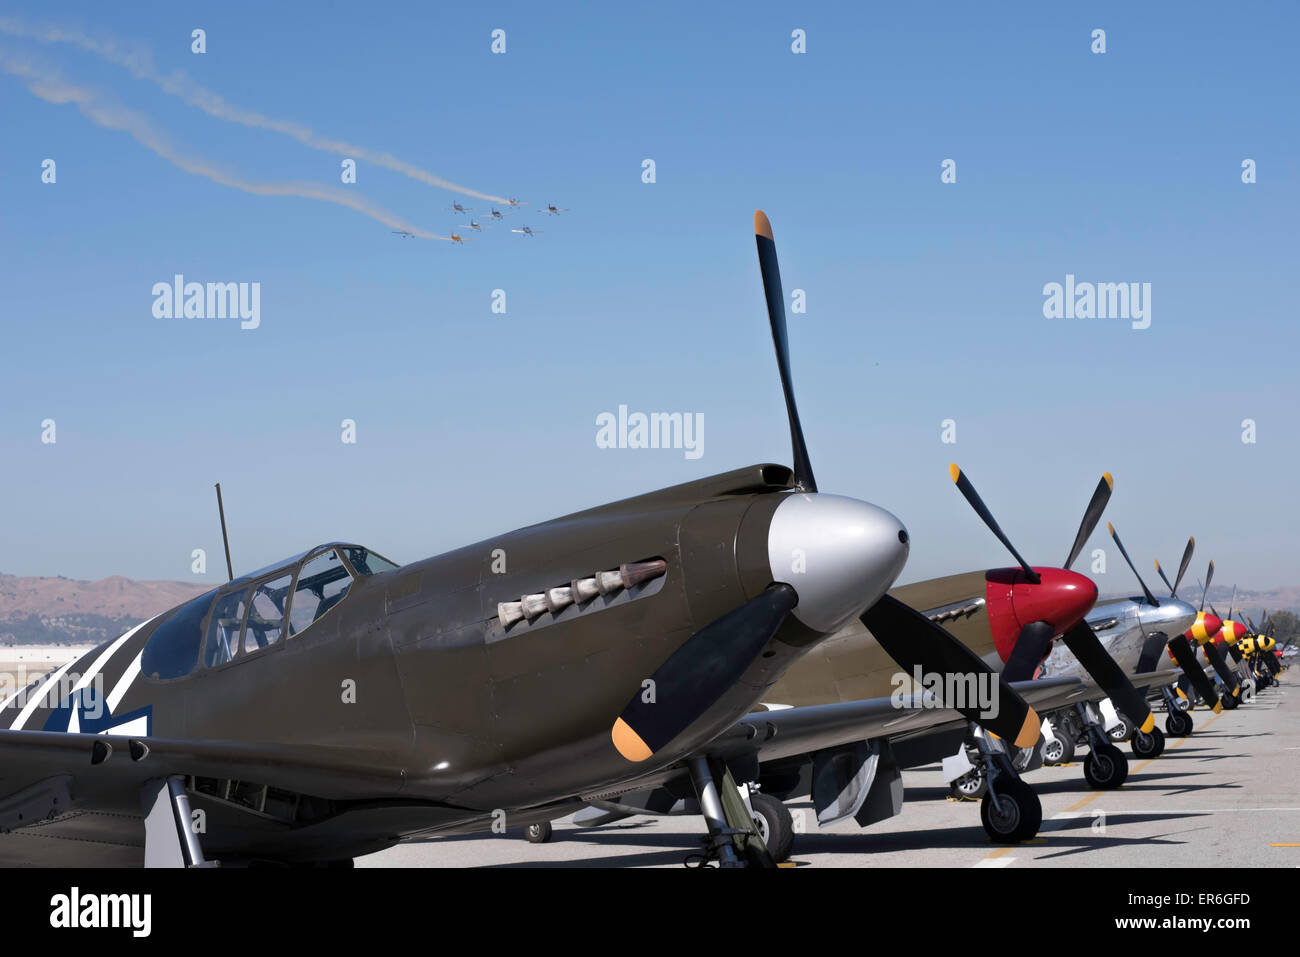 WW2 fighter planes on the ground and in the air - Stock Image